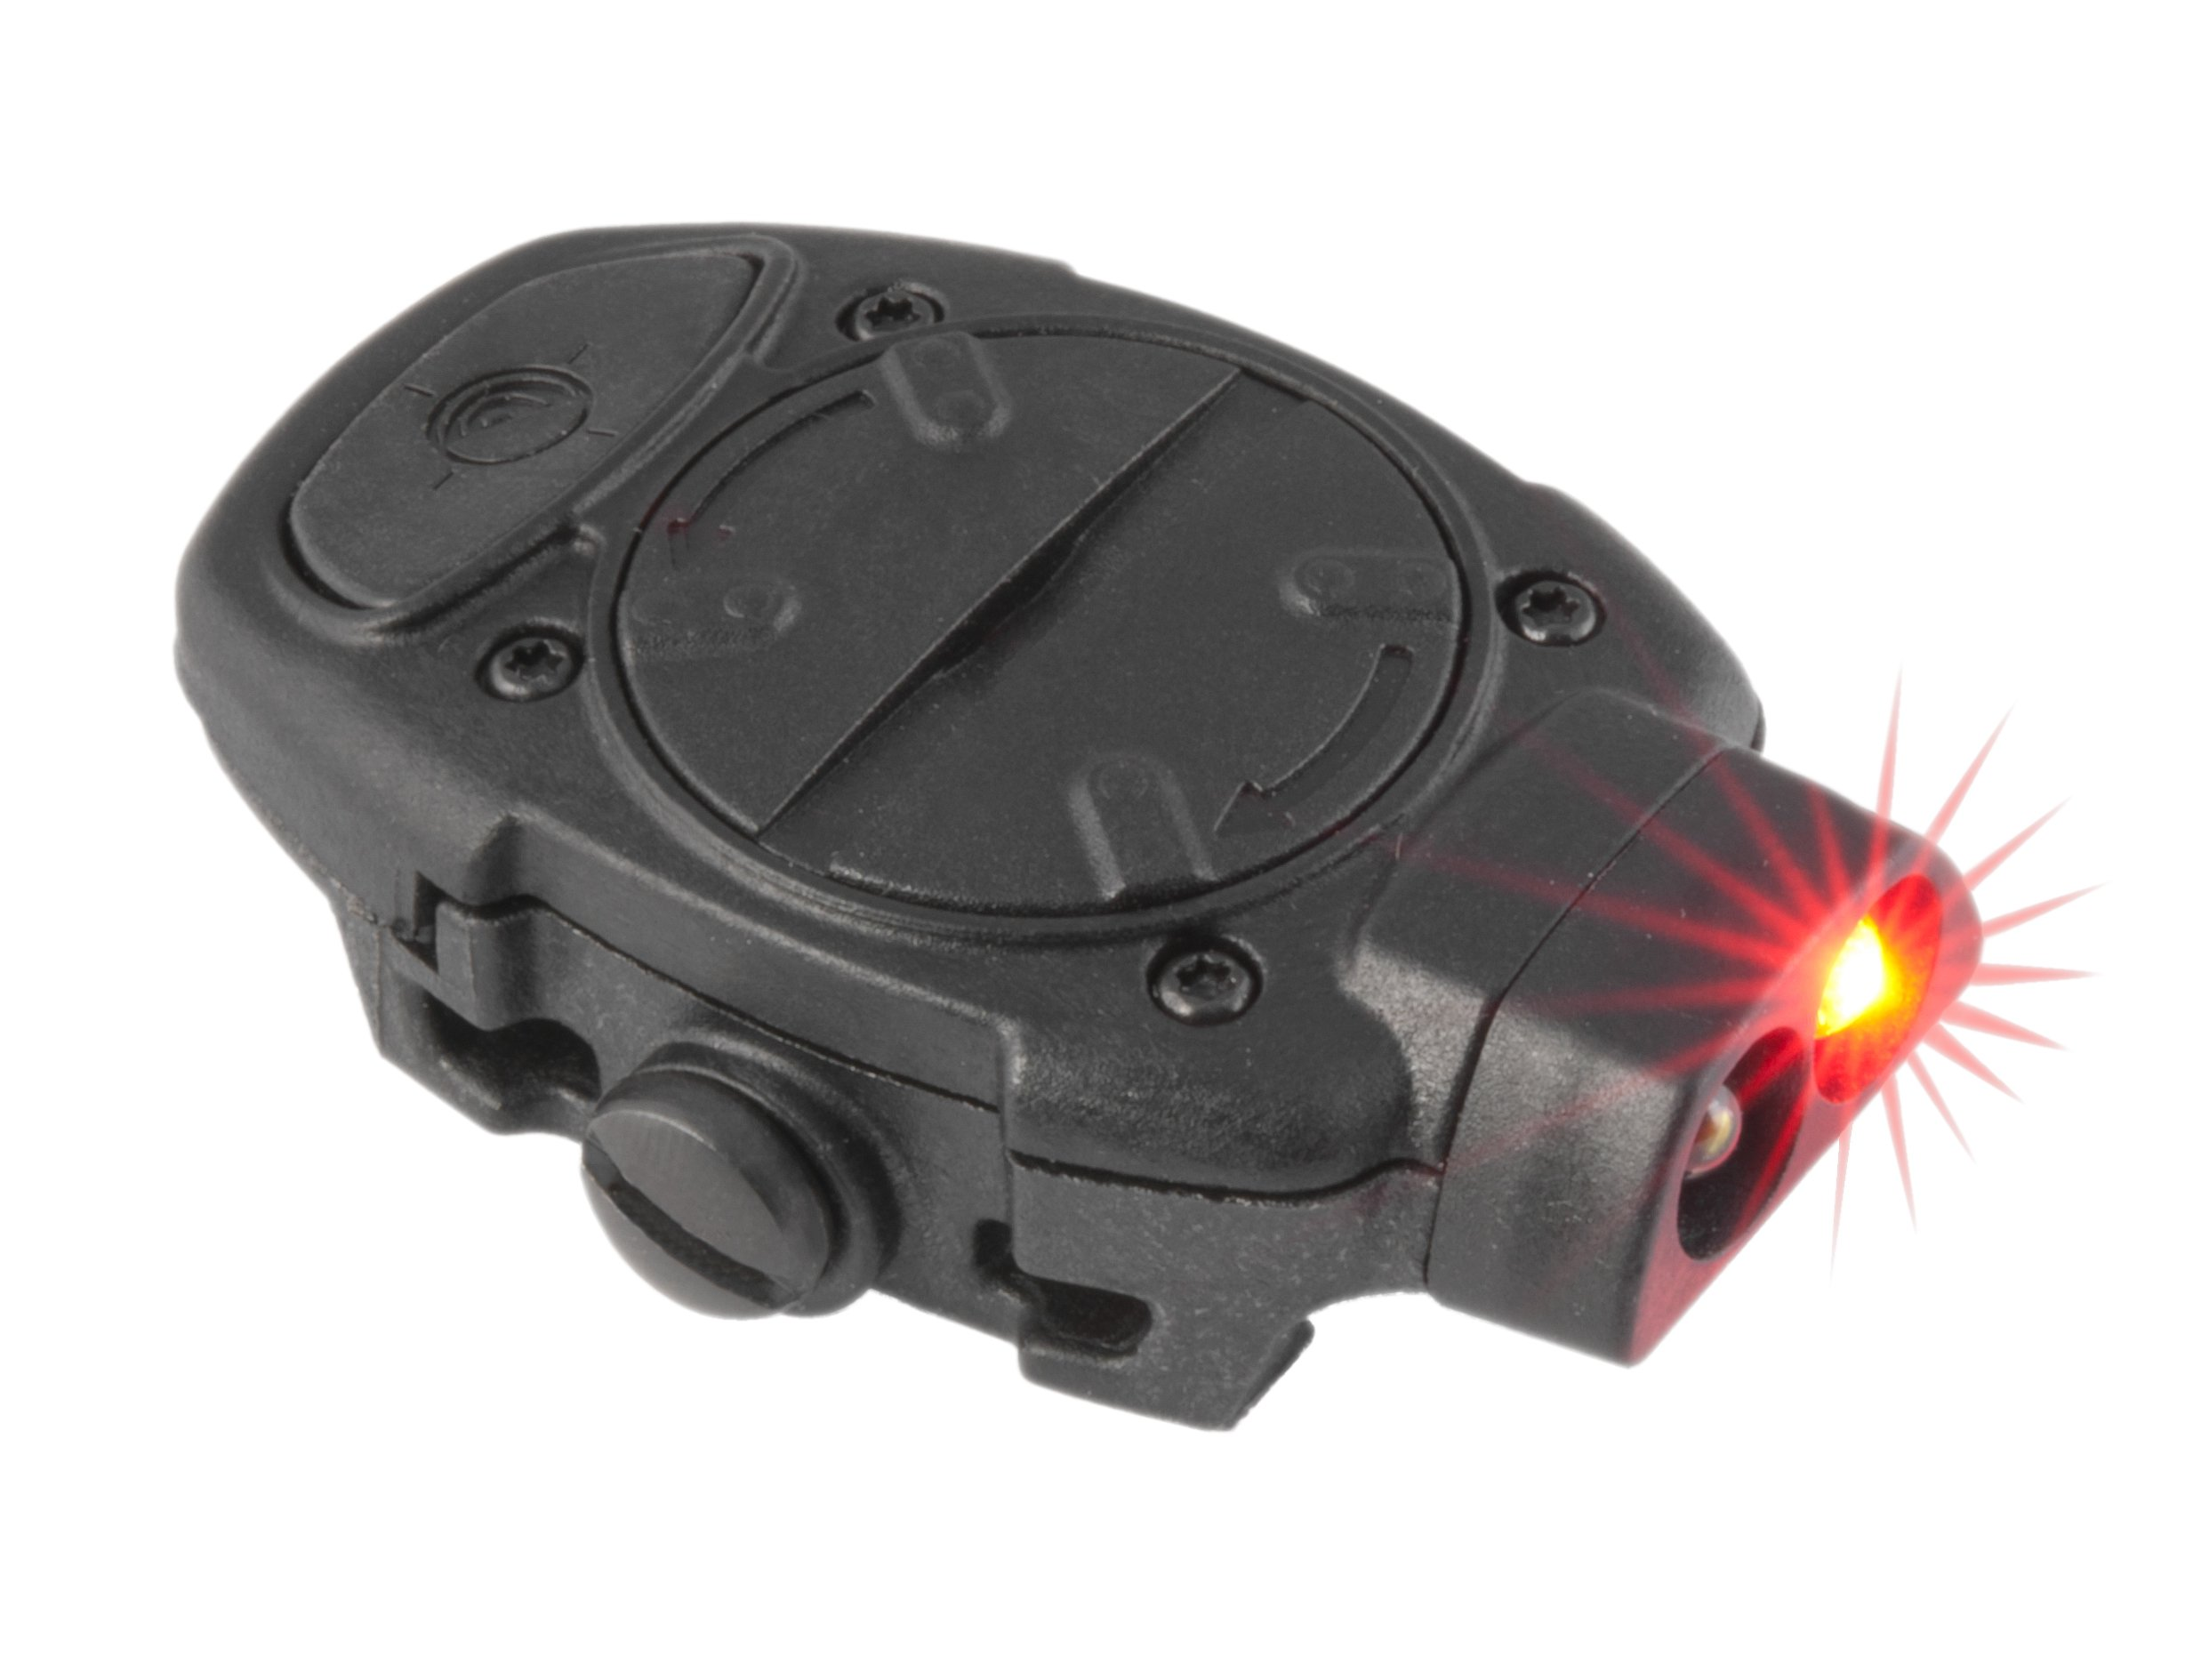 Mission First Tactical Torch Back Up Picatinny Mounted Light, White/Red